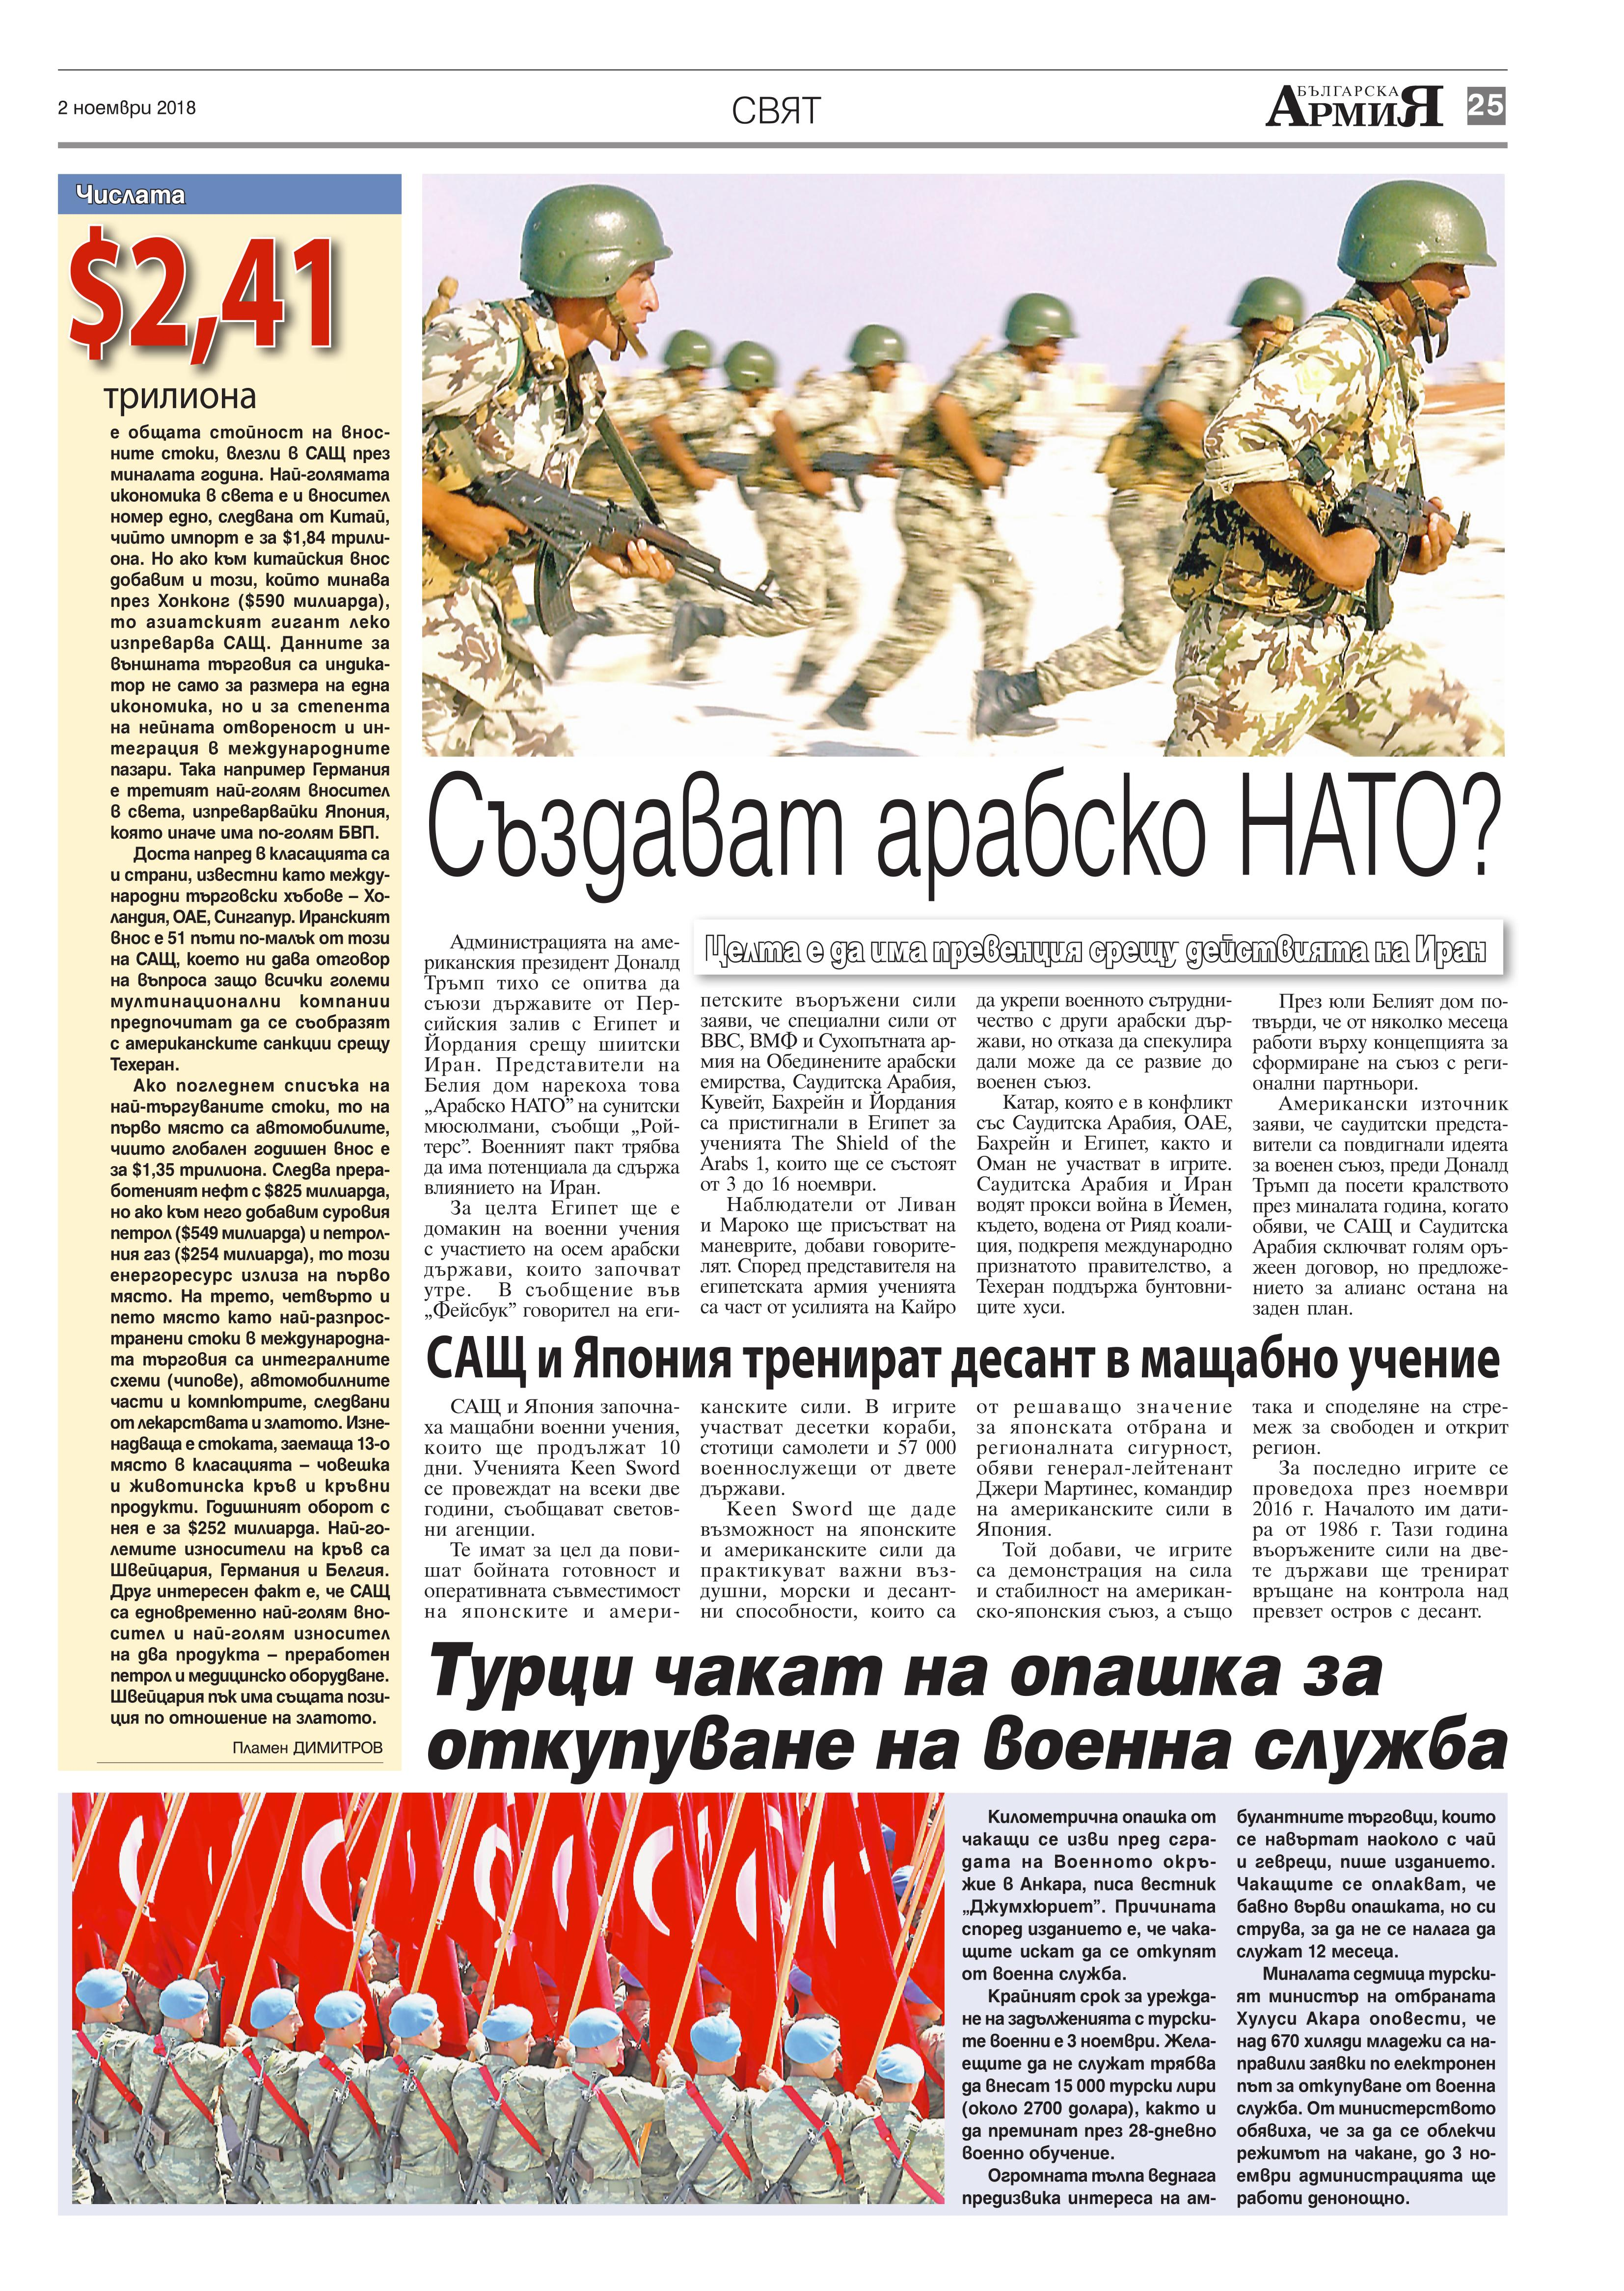 https://armymedia.bg/wp-content/uploads/2015/06/25.page1_-60.jpg